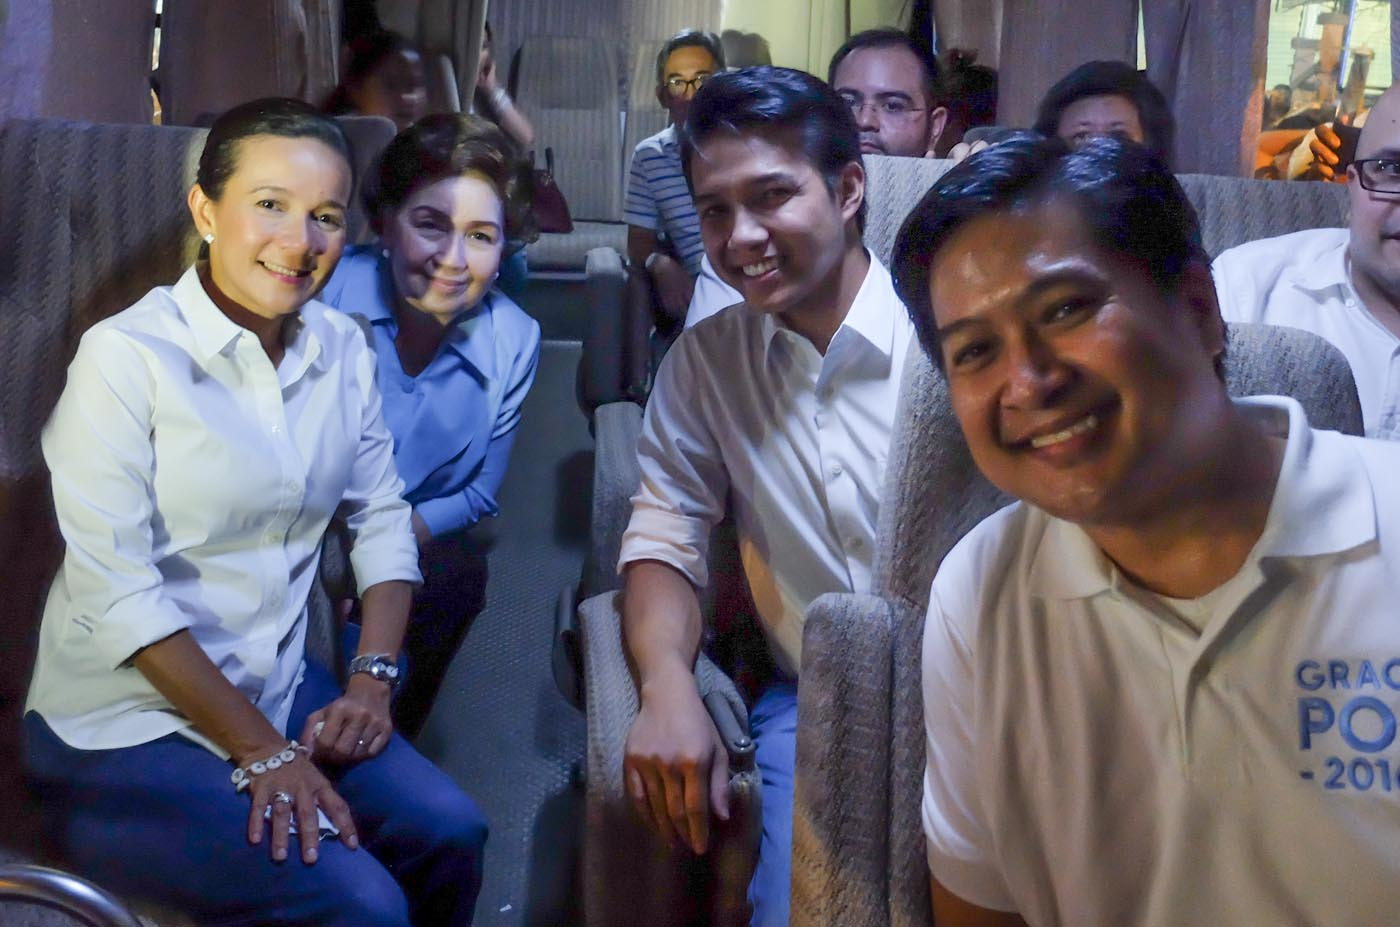 Angeline Quinto Sex Scandal in photos: stars at grace poe's miting de avance